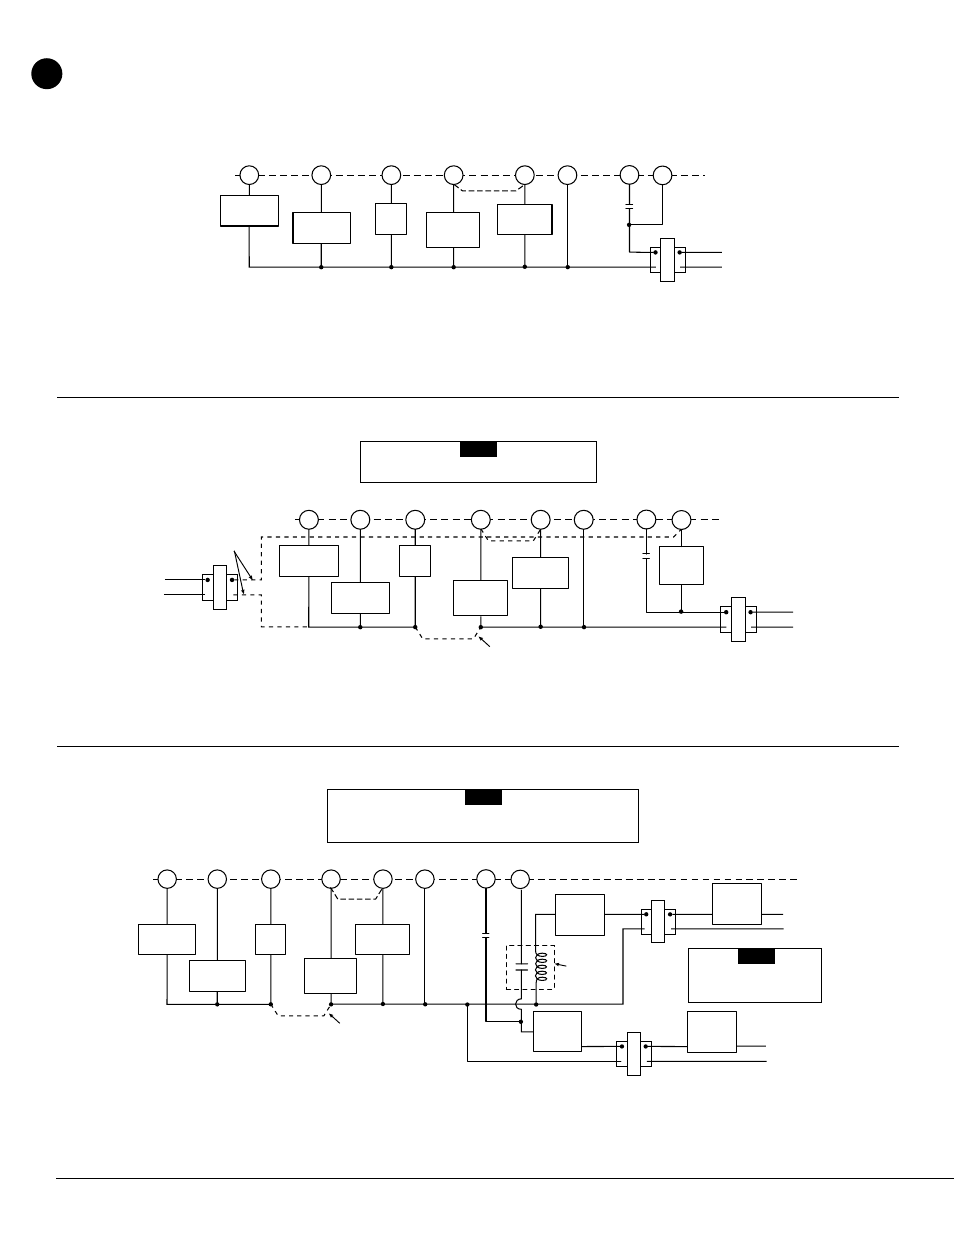 White Rodgers Transformer Wiring Diagram Diagrams Accessory Relay Mounting And Continued From Second Page Typical Thermostat